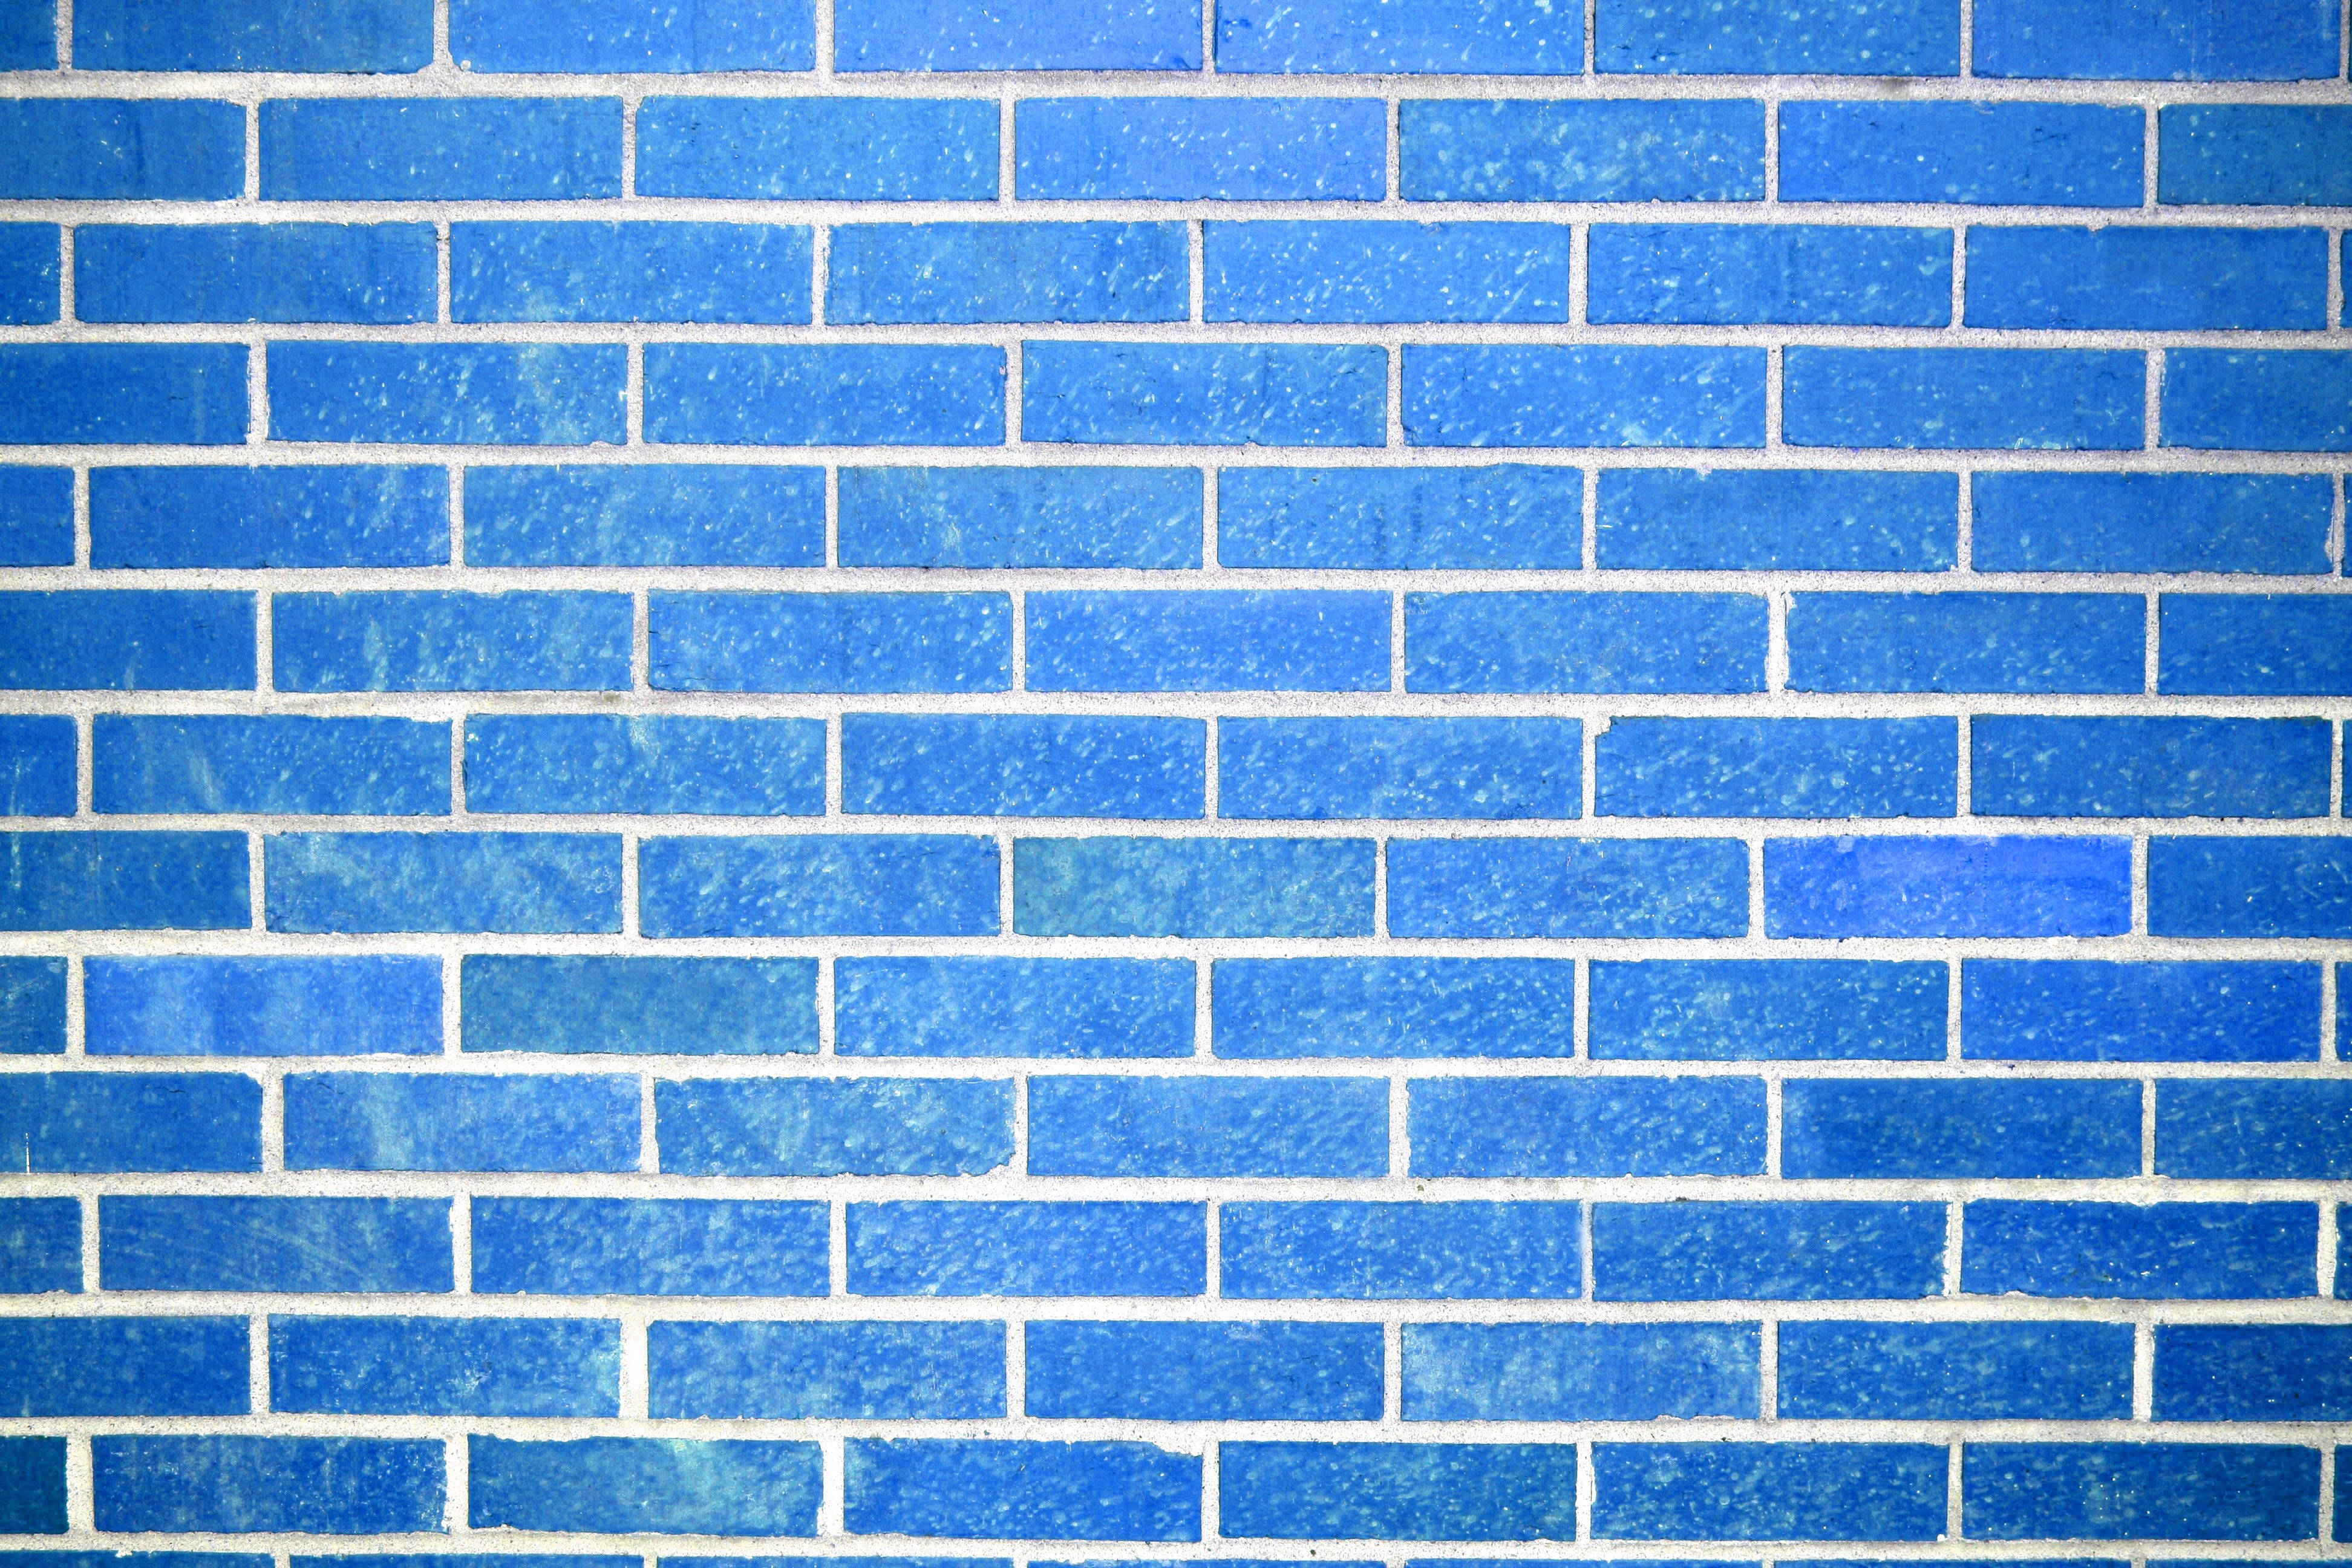 Sky Blue Brick Wall Texture